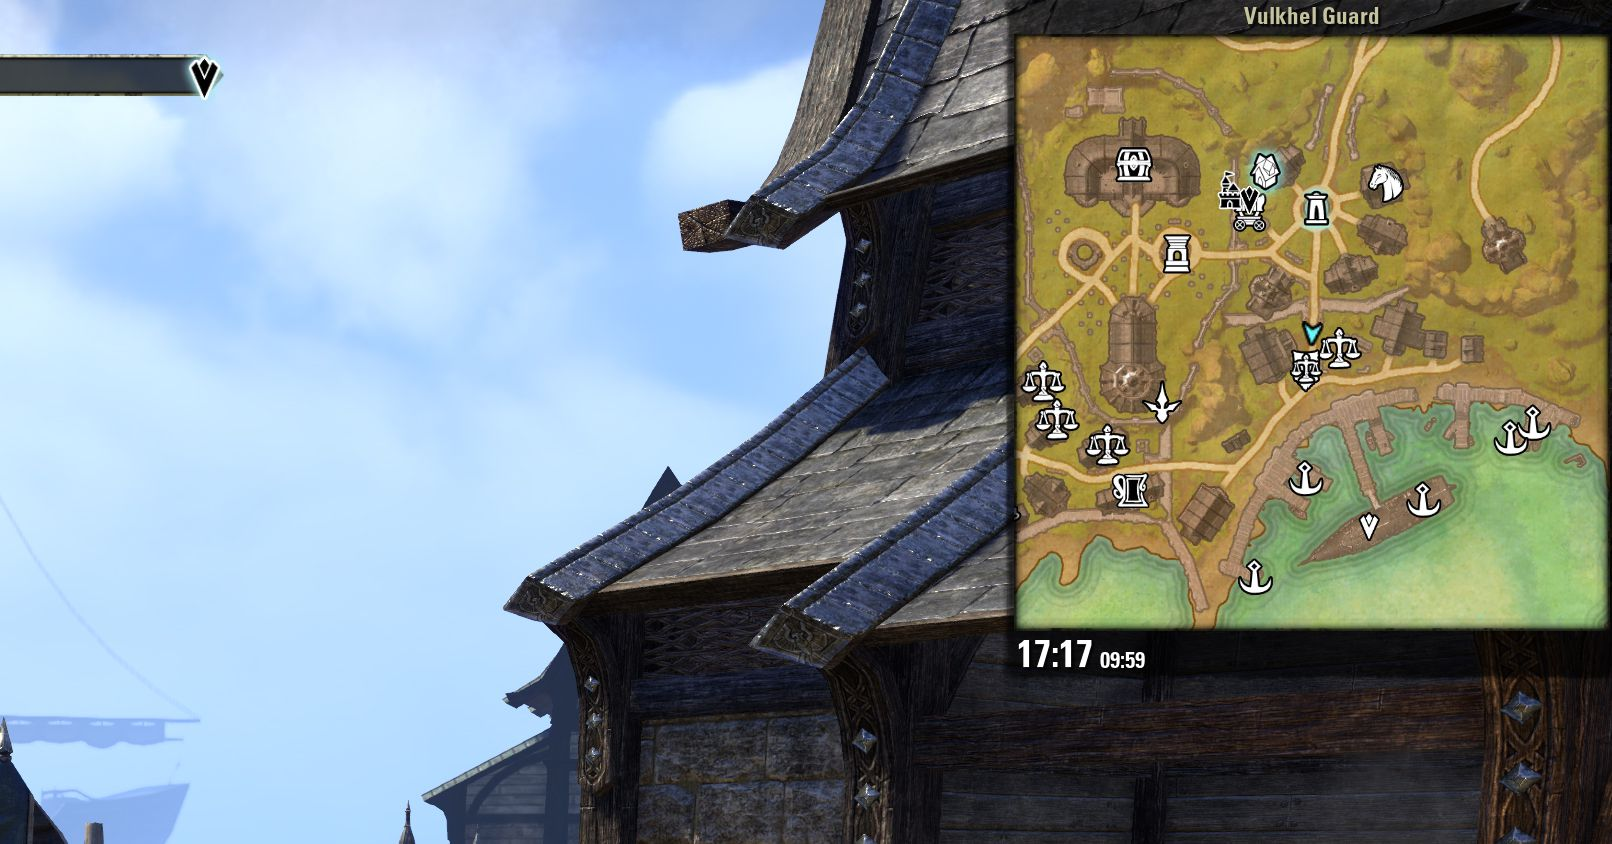 Votan's Minimap by votan, The Elder Scrolls Online Addon (image by @serpentaa)